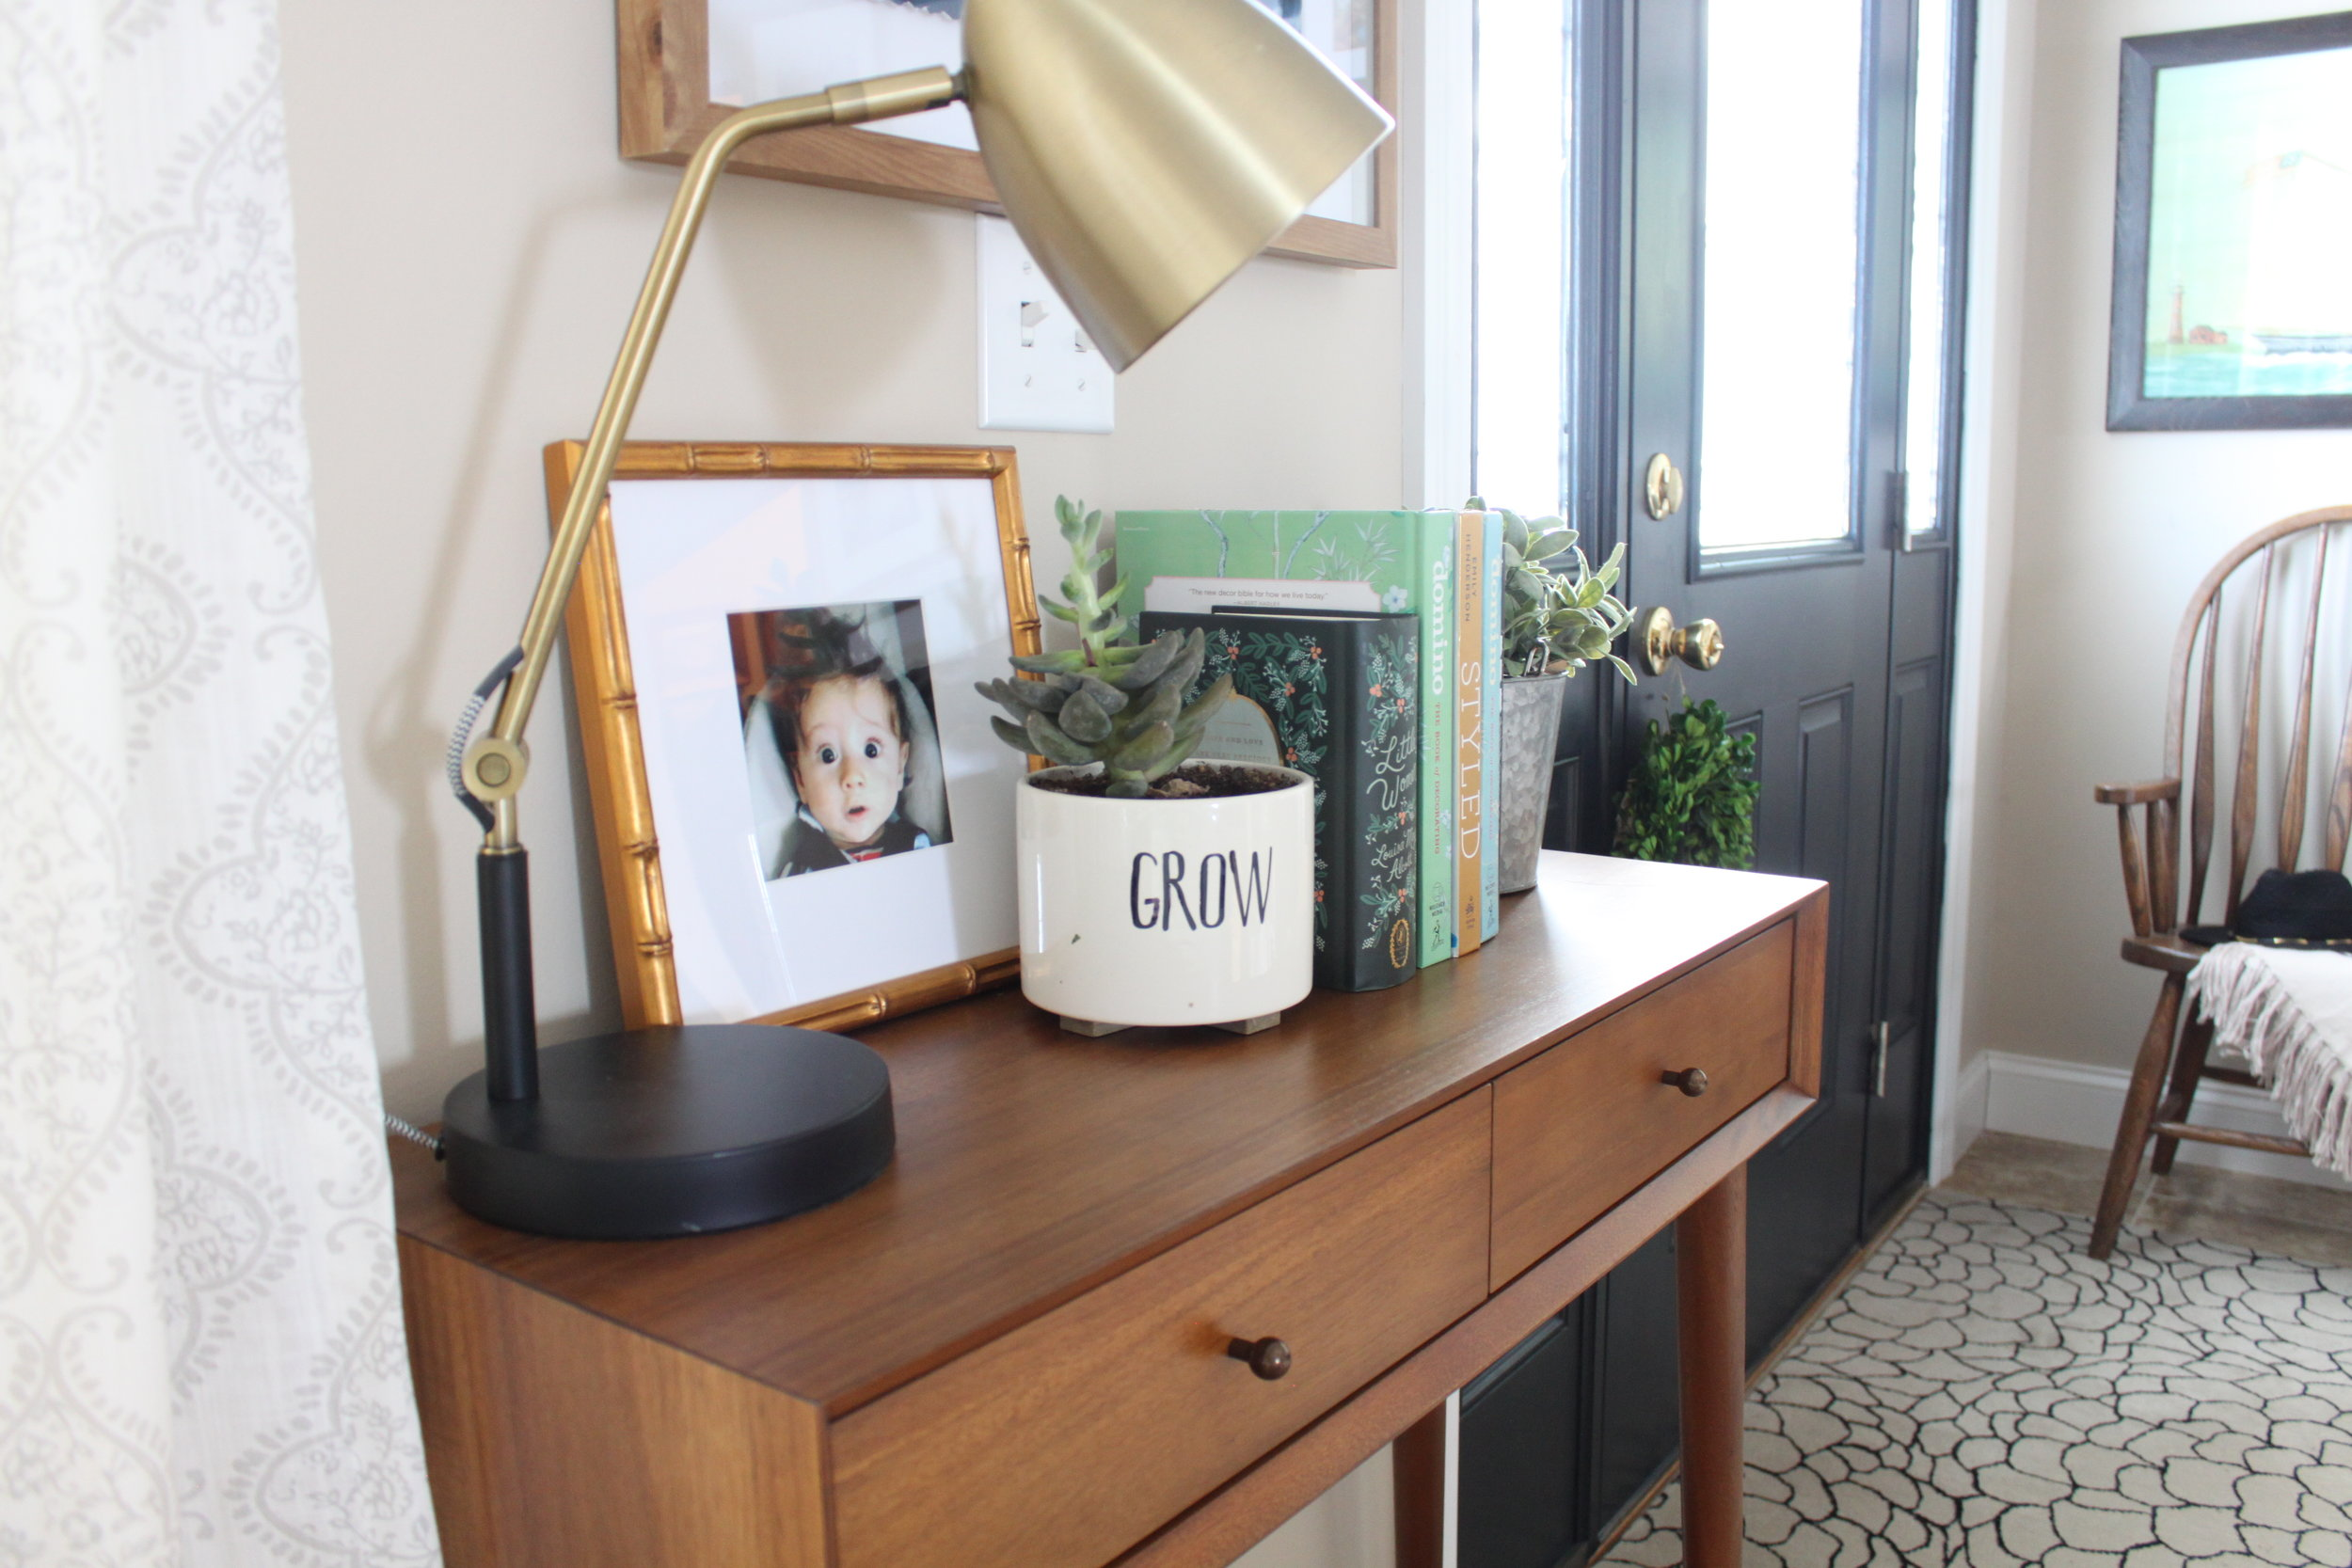 Wood entry table with gold lamp, framed photo, faux plant, and black front door with natural light